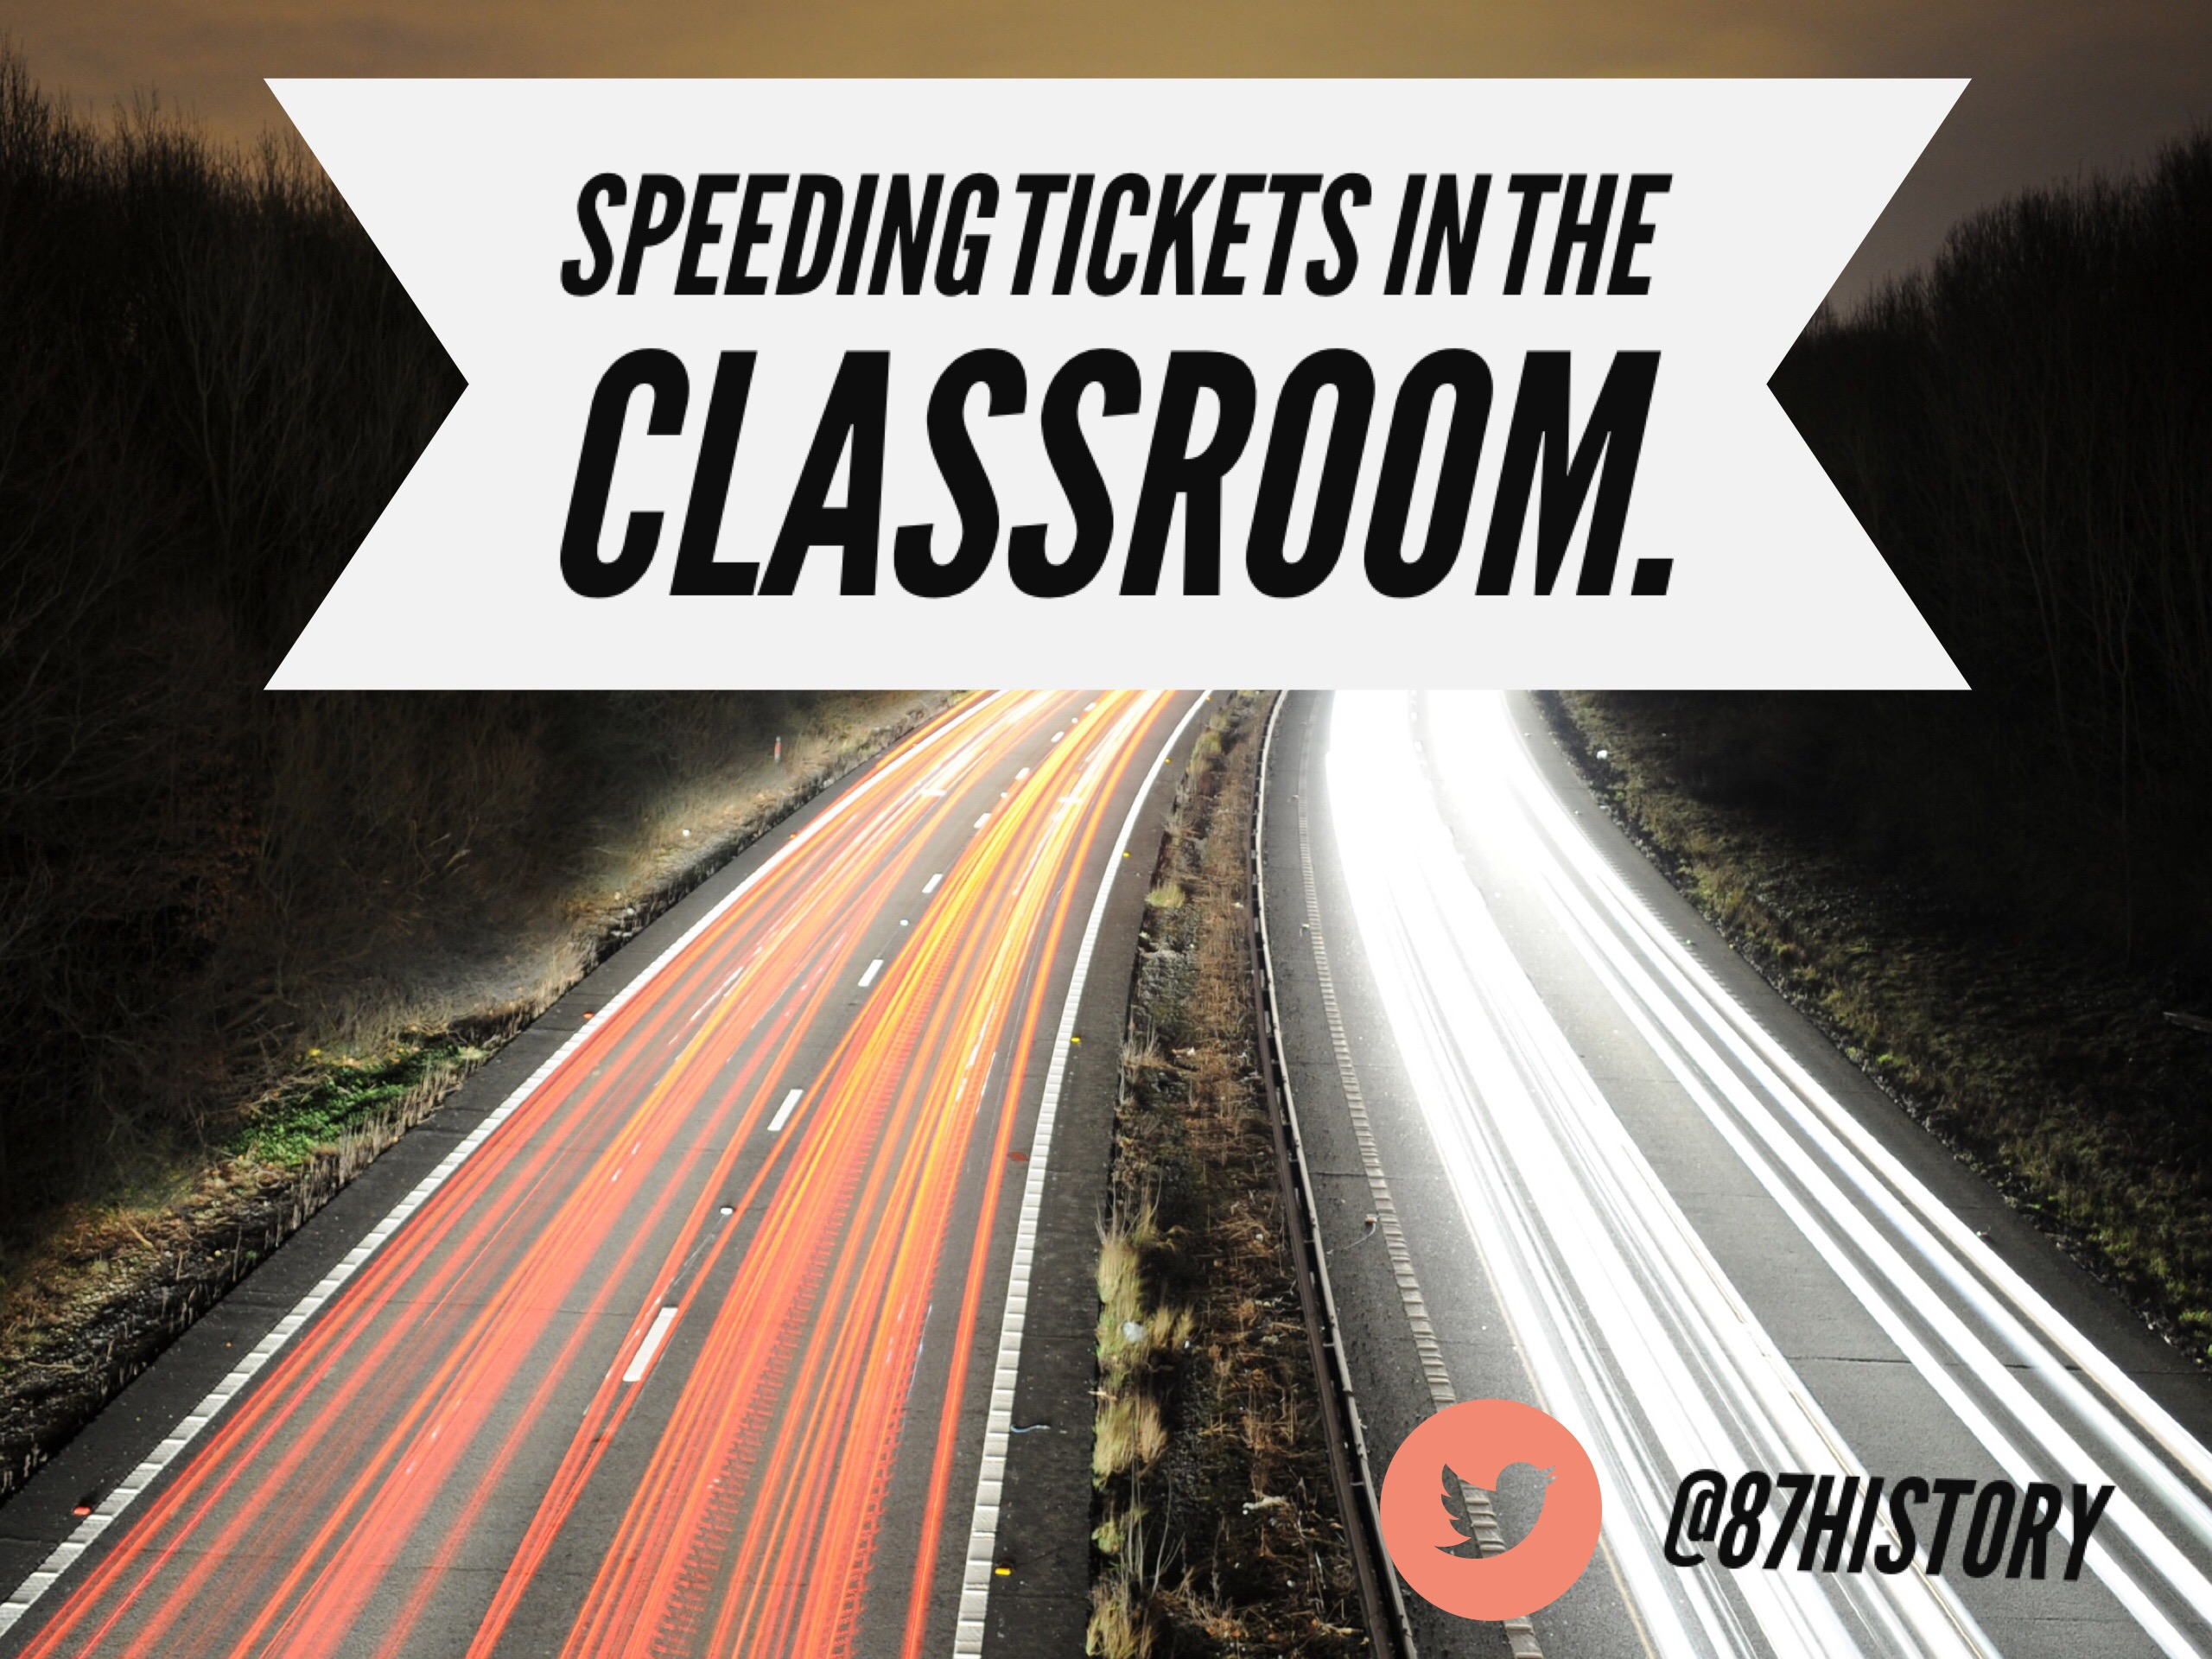 Speeding tickets…in the classroom!